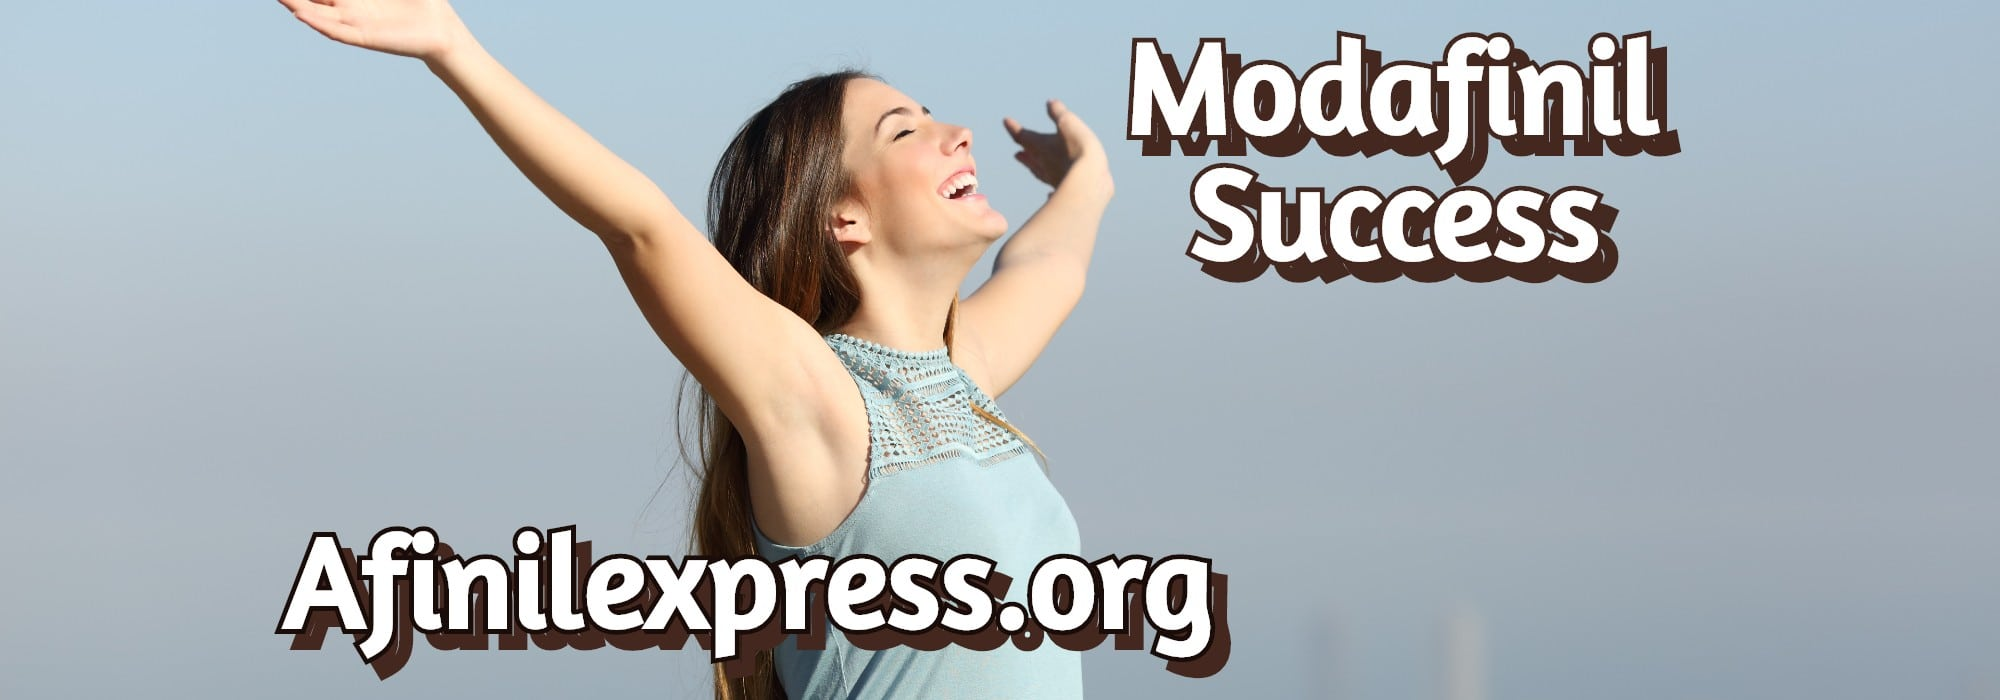 success with modafinil, afinilexpress